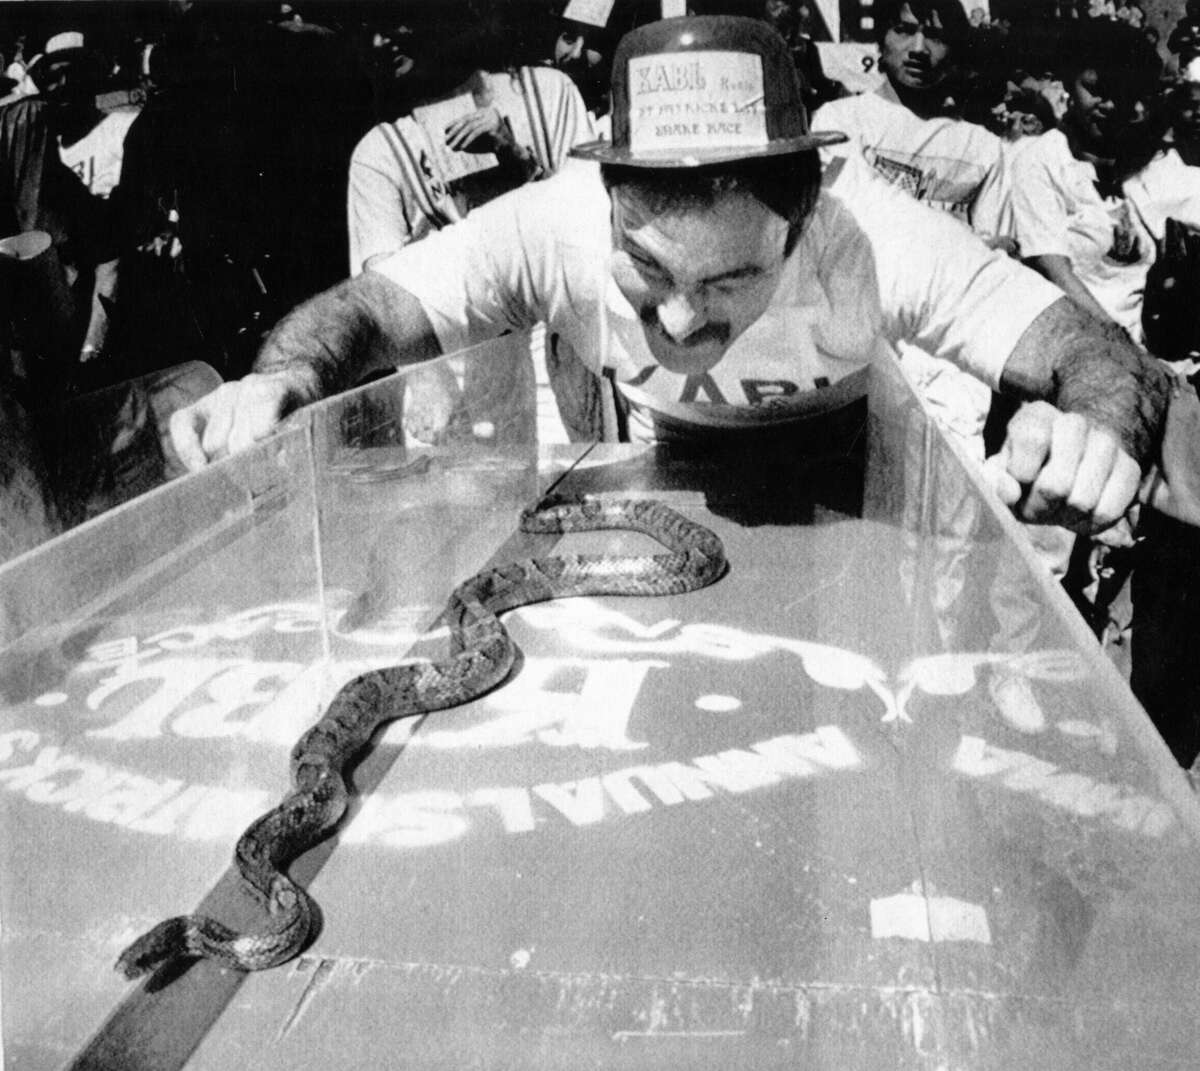 Snake chaser, Steven Holt of Pacifica, CA cheers on his snake